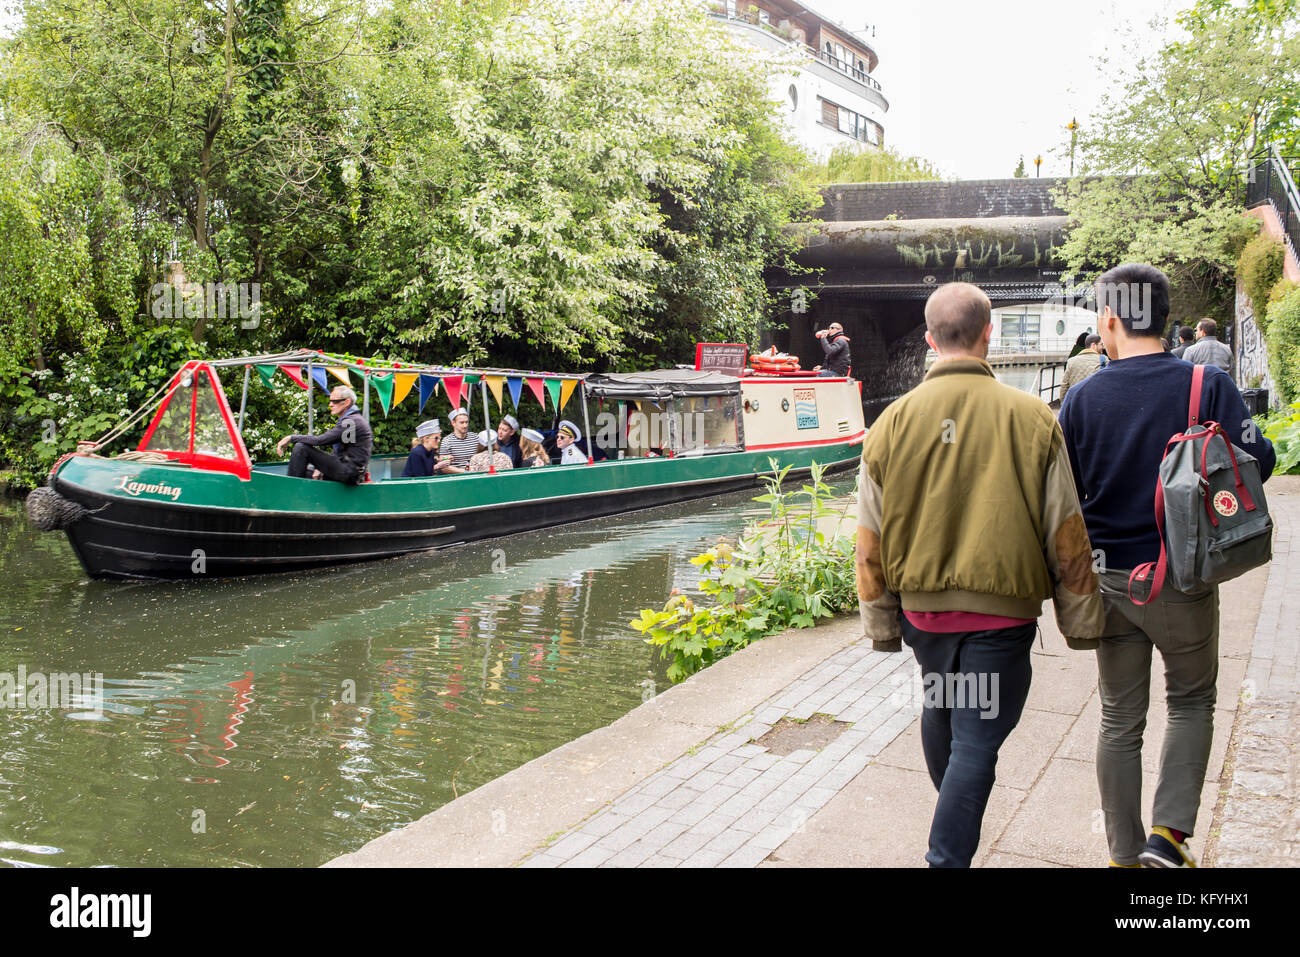 Narrowboat or barge passing on the Regents Canal with people walking in the canalside towpath near Camden Town, - Stock Image